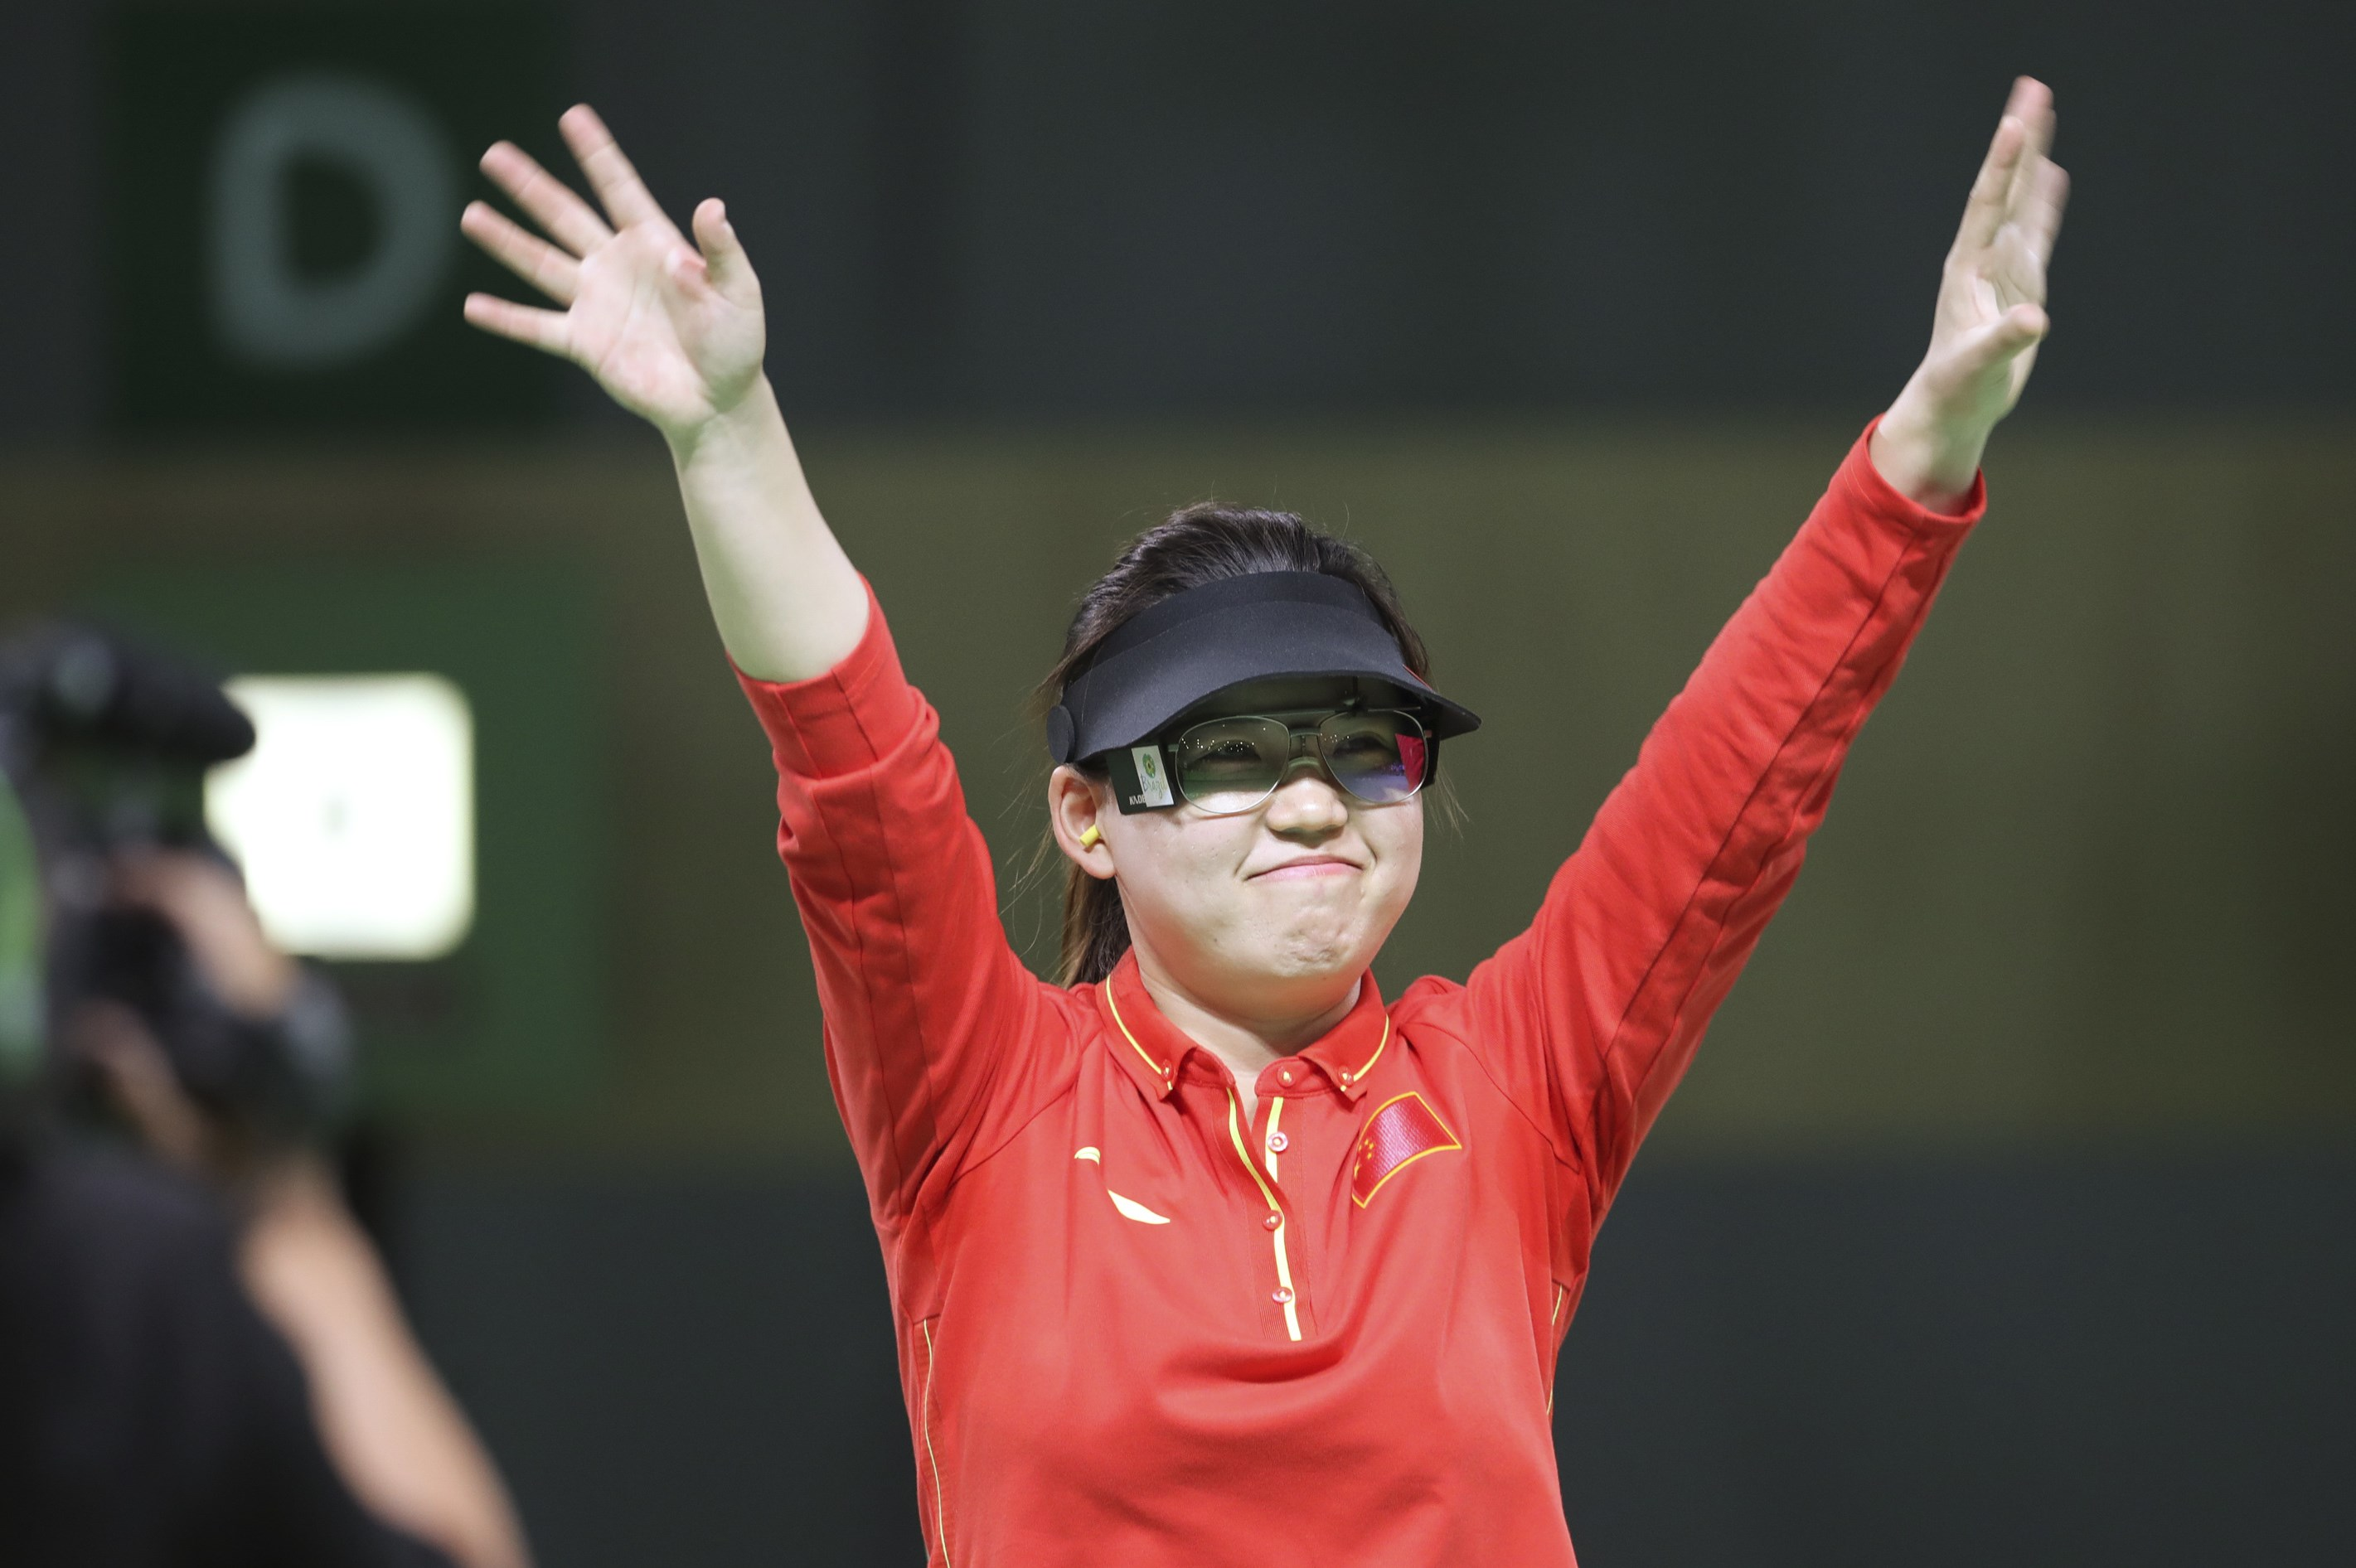 Zhang Mengxue of China celebrates her victory during the women's 10-meter air pistol finals at Olympic Shooting Center at the 2016 Summer Olympics in Rio de Janeiro, Brazil, Sunday, Aug. 7, 2016. Zhang won the gold medal. (AP Photo/Eugene Hoshiko)